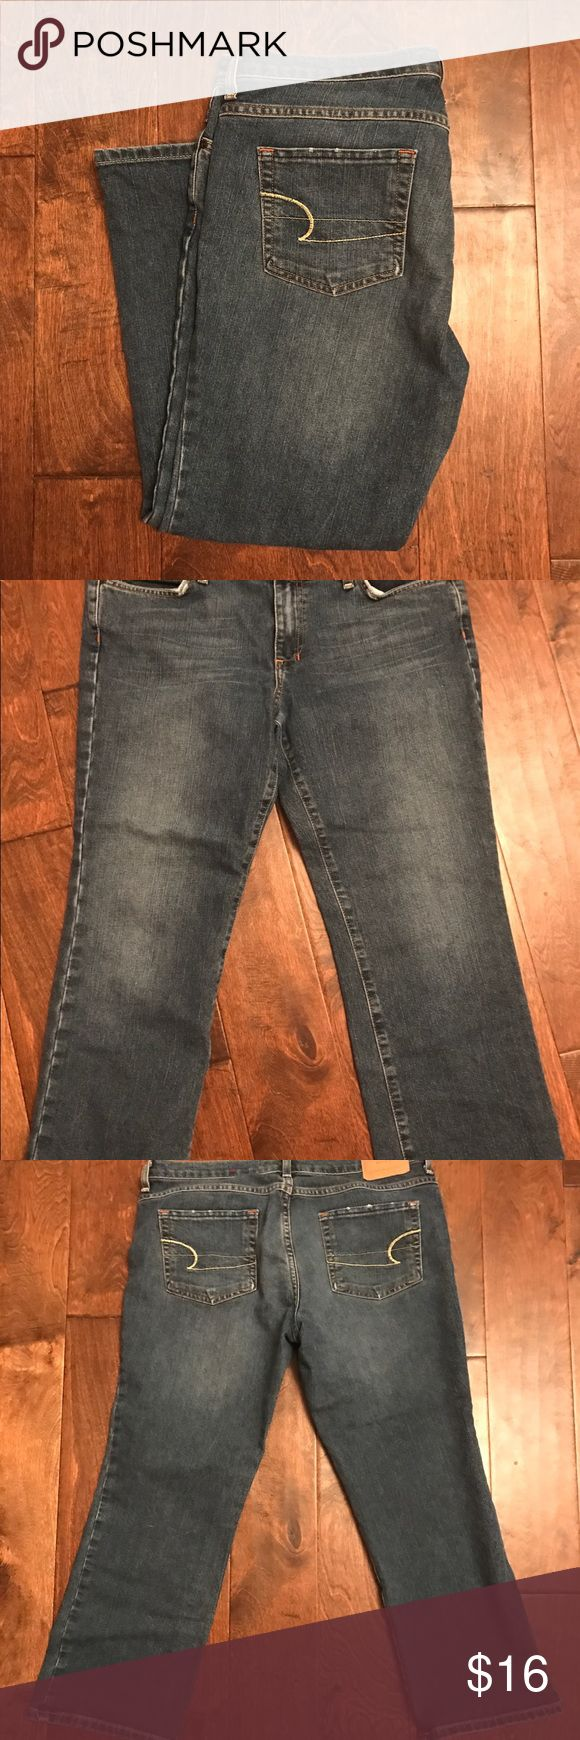 American Eagle Capri jeans American Eagle Capri jeans, size 12.  In good shape and has some stretch to them with the 2% spandex. American Eagle Outfitters Jeans Ankle & Cropped